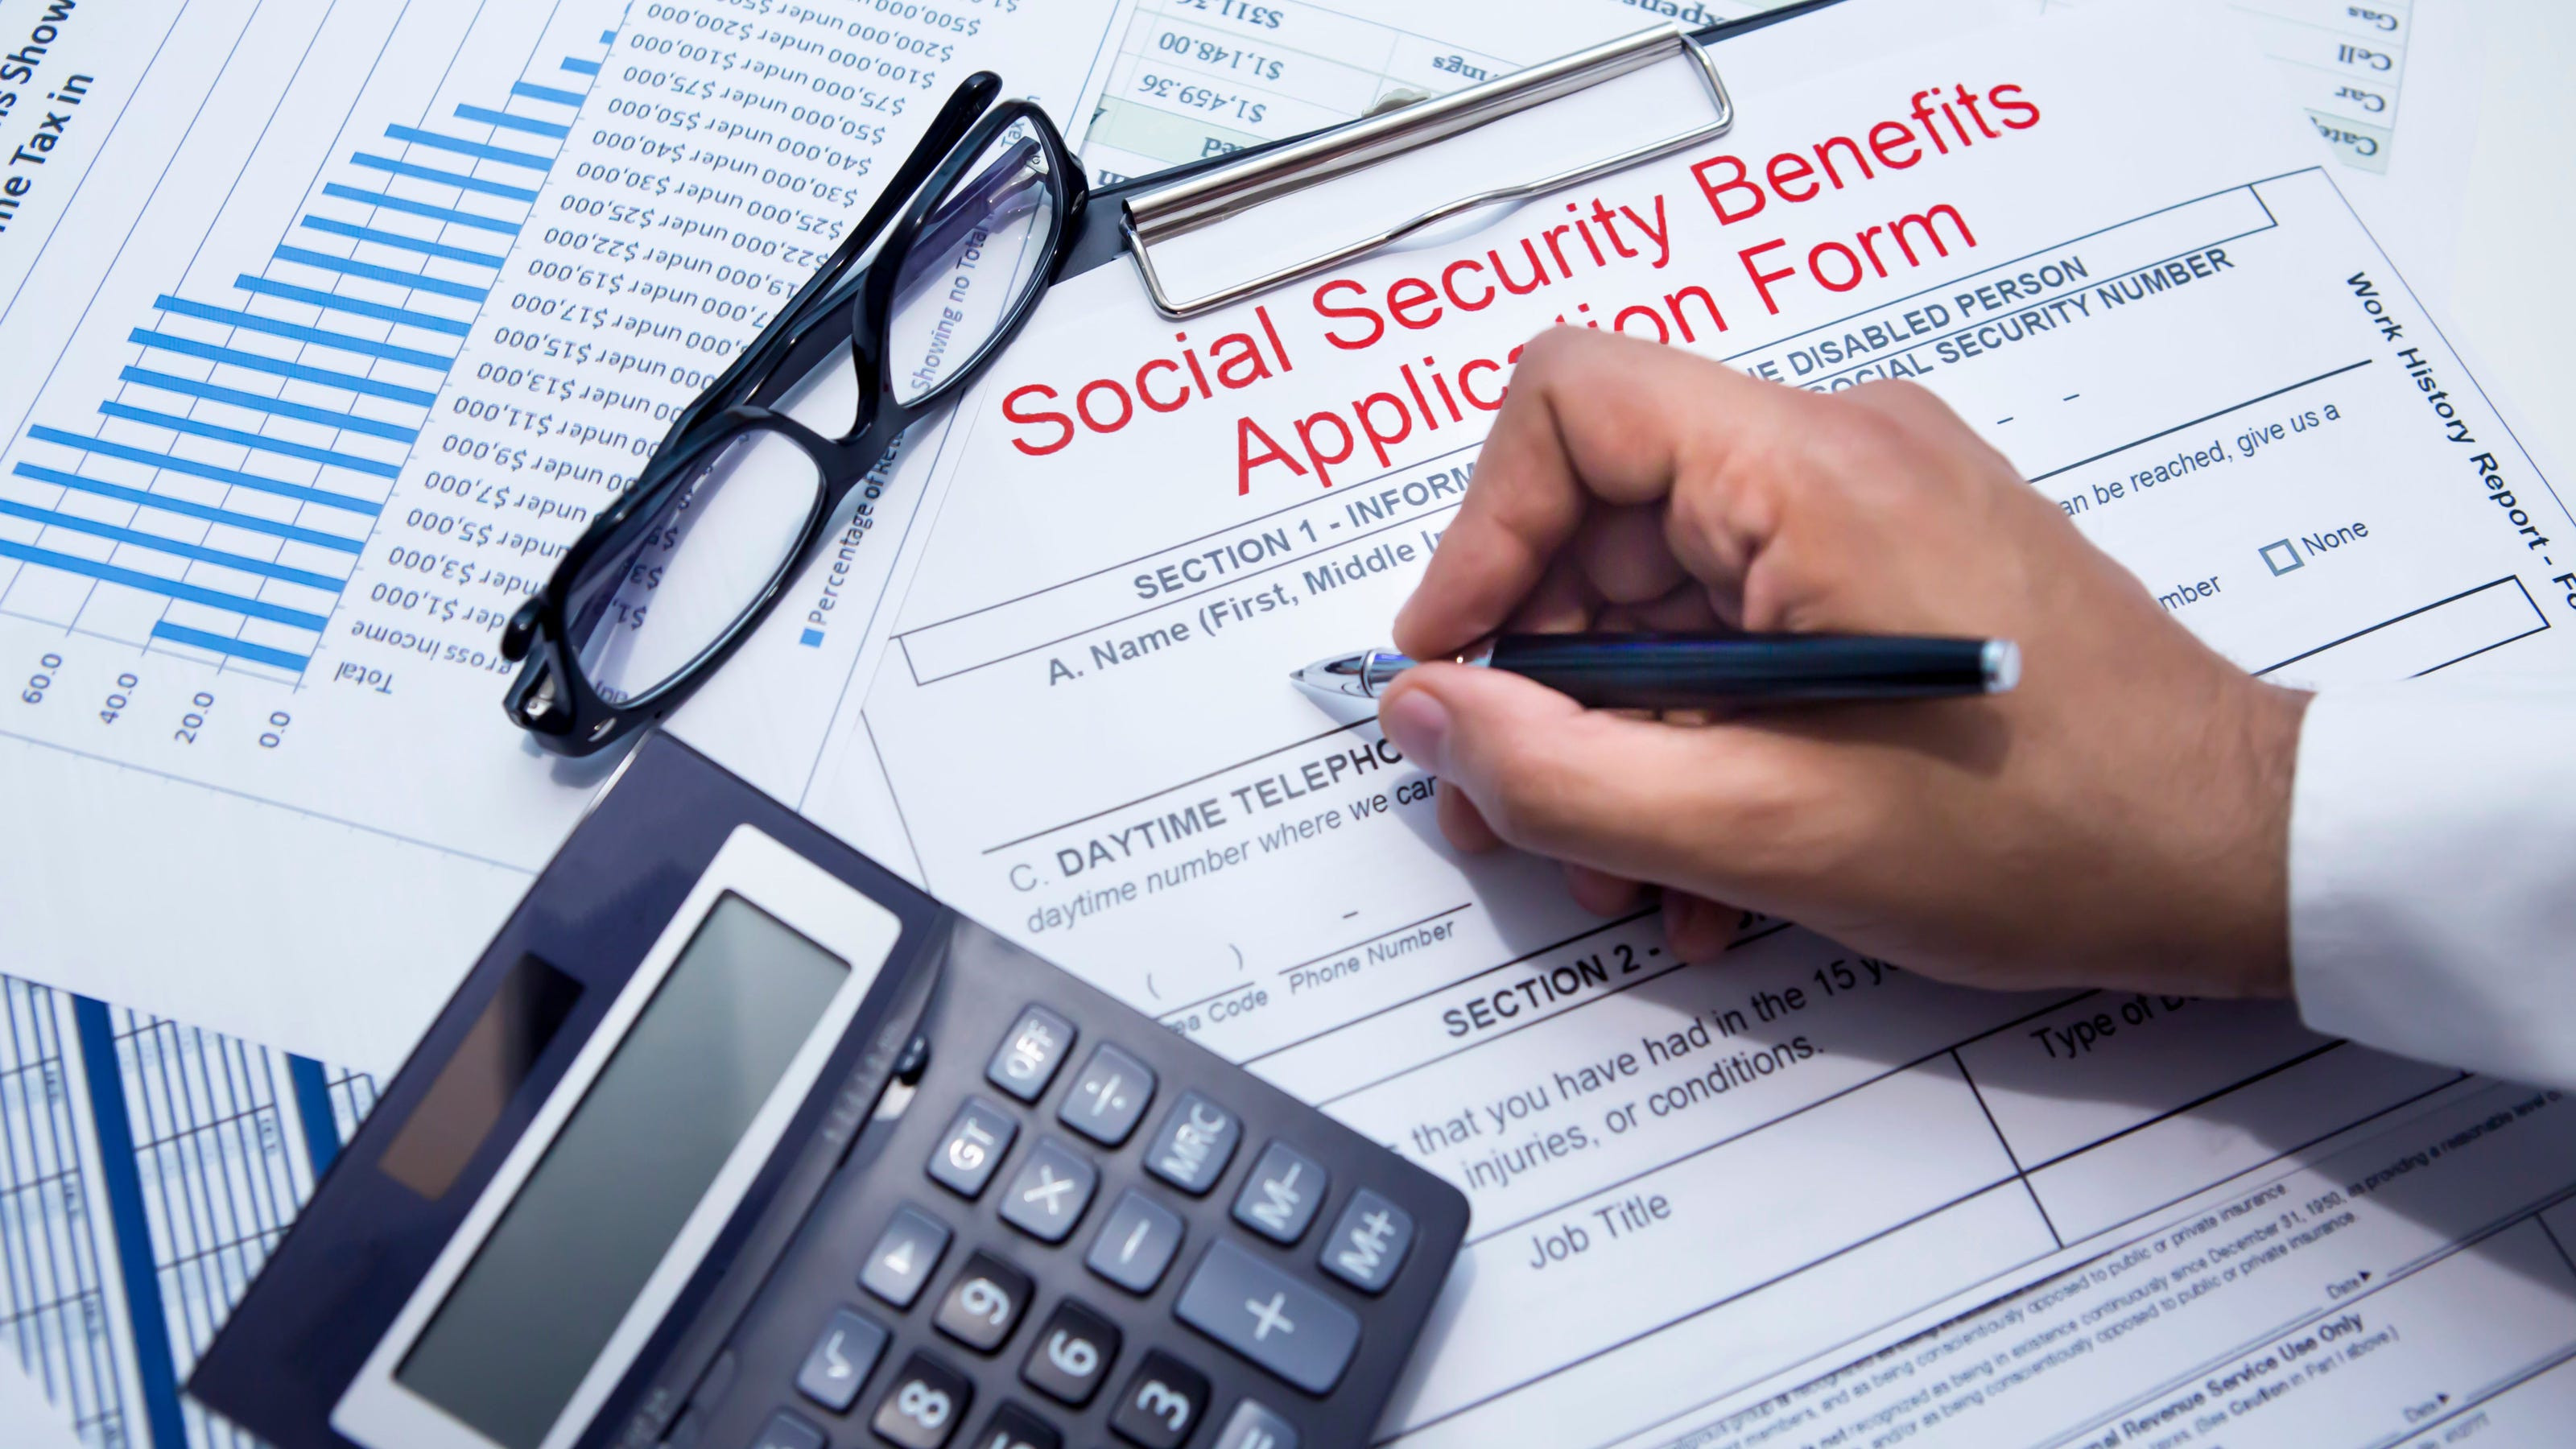 Social Security Disability Application form Awesome social Security 2020 4 Changes You Should Expect This Year